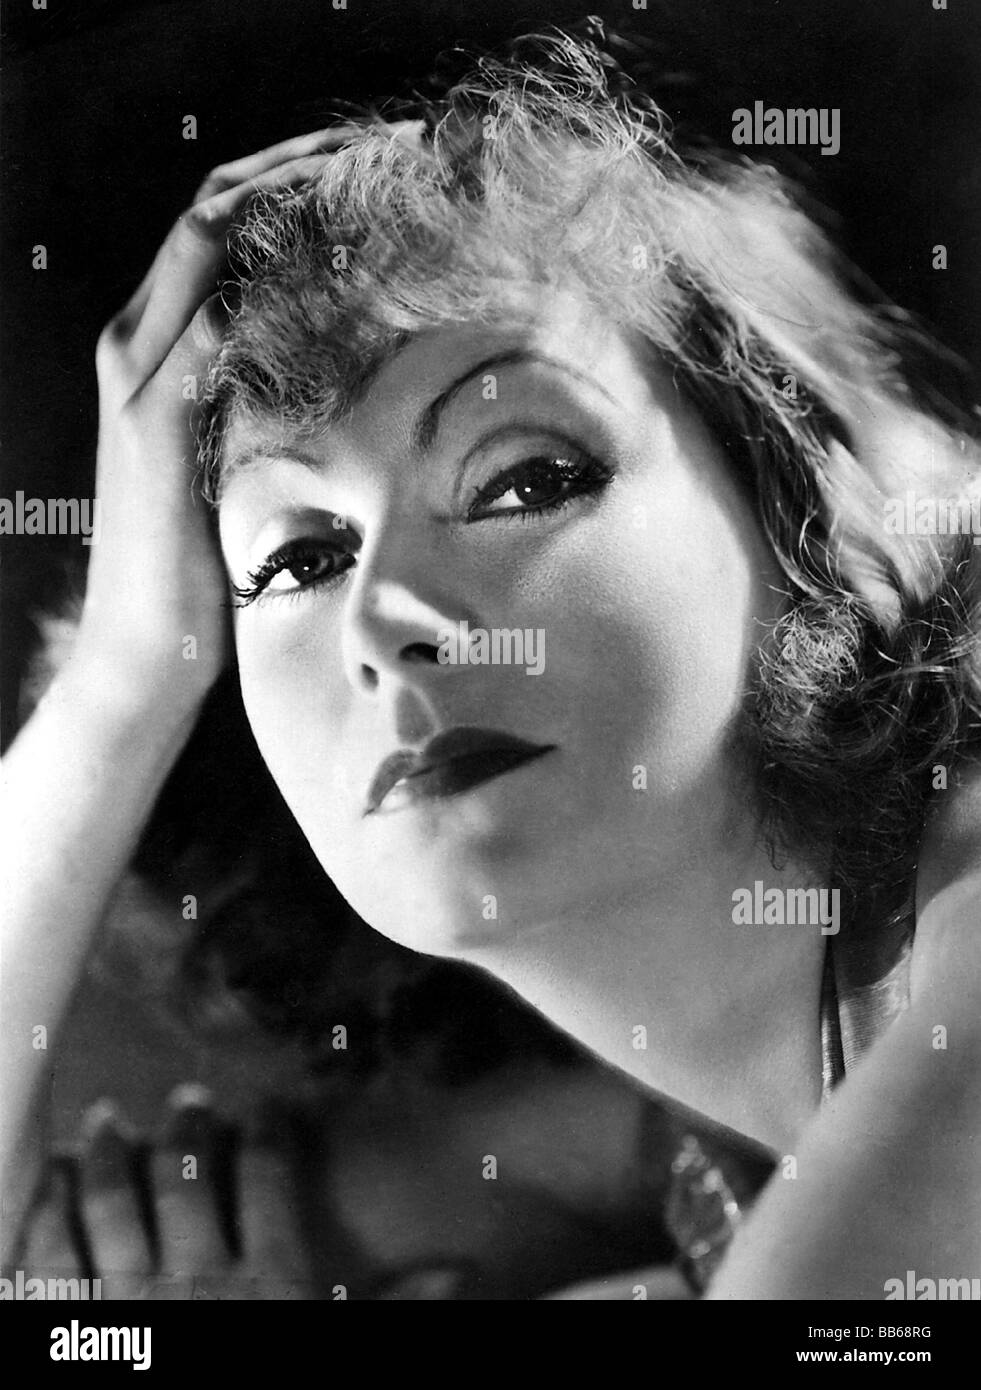 greta garbo 1930s stock photos amp greta garbo 1930s stock